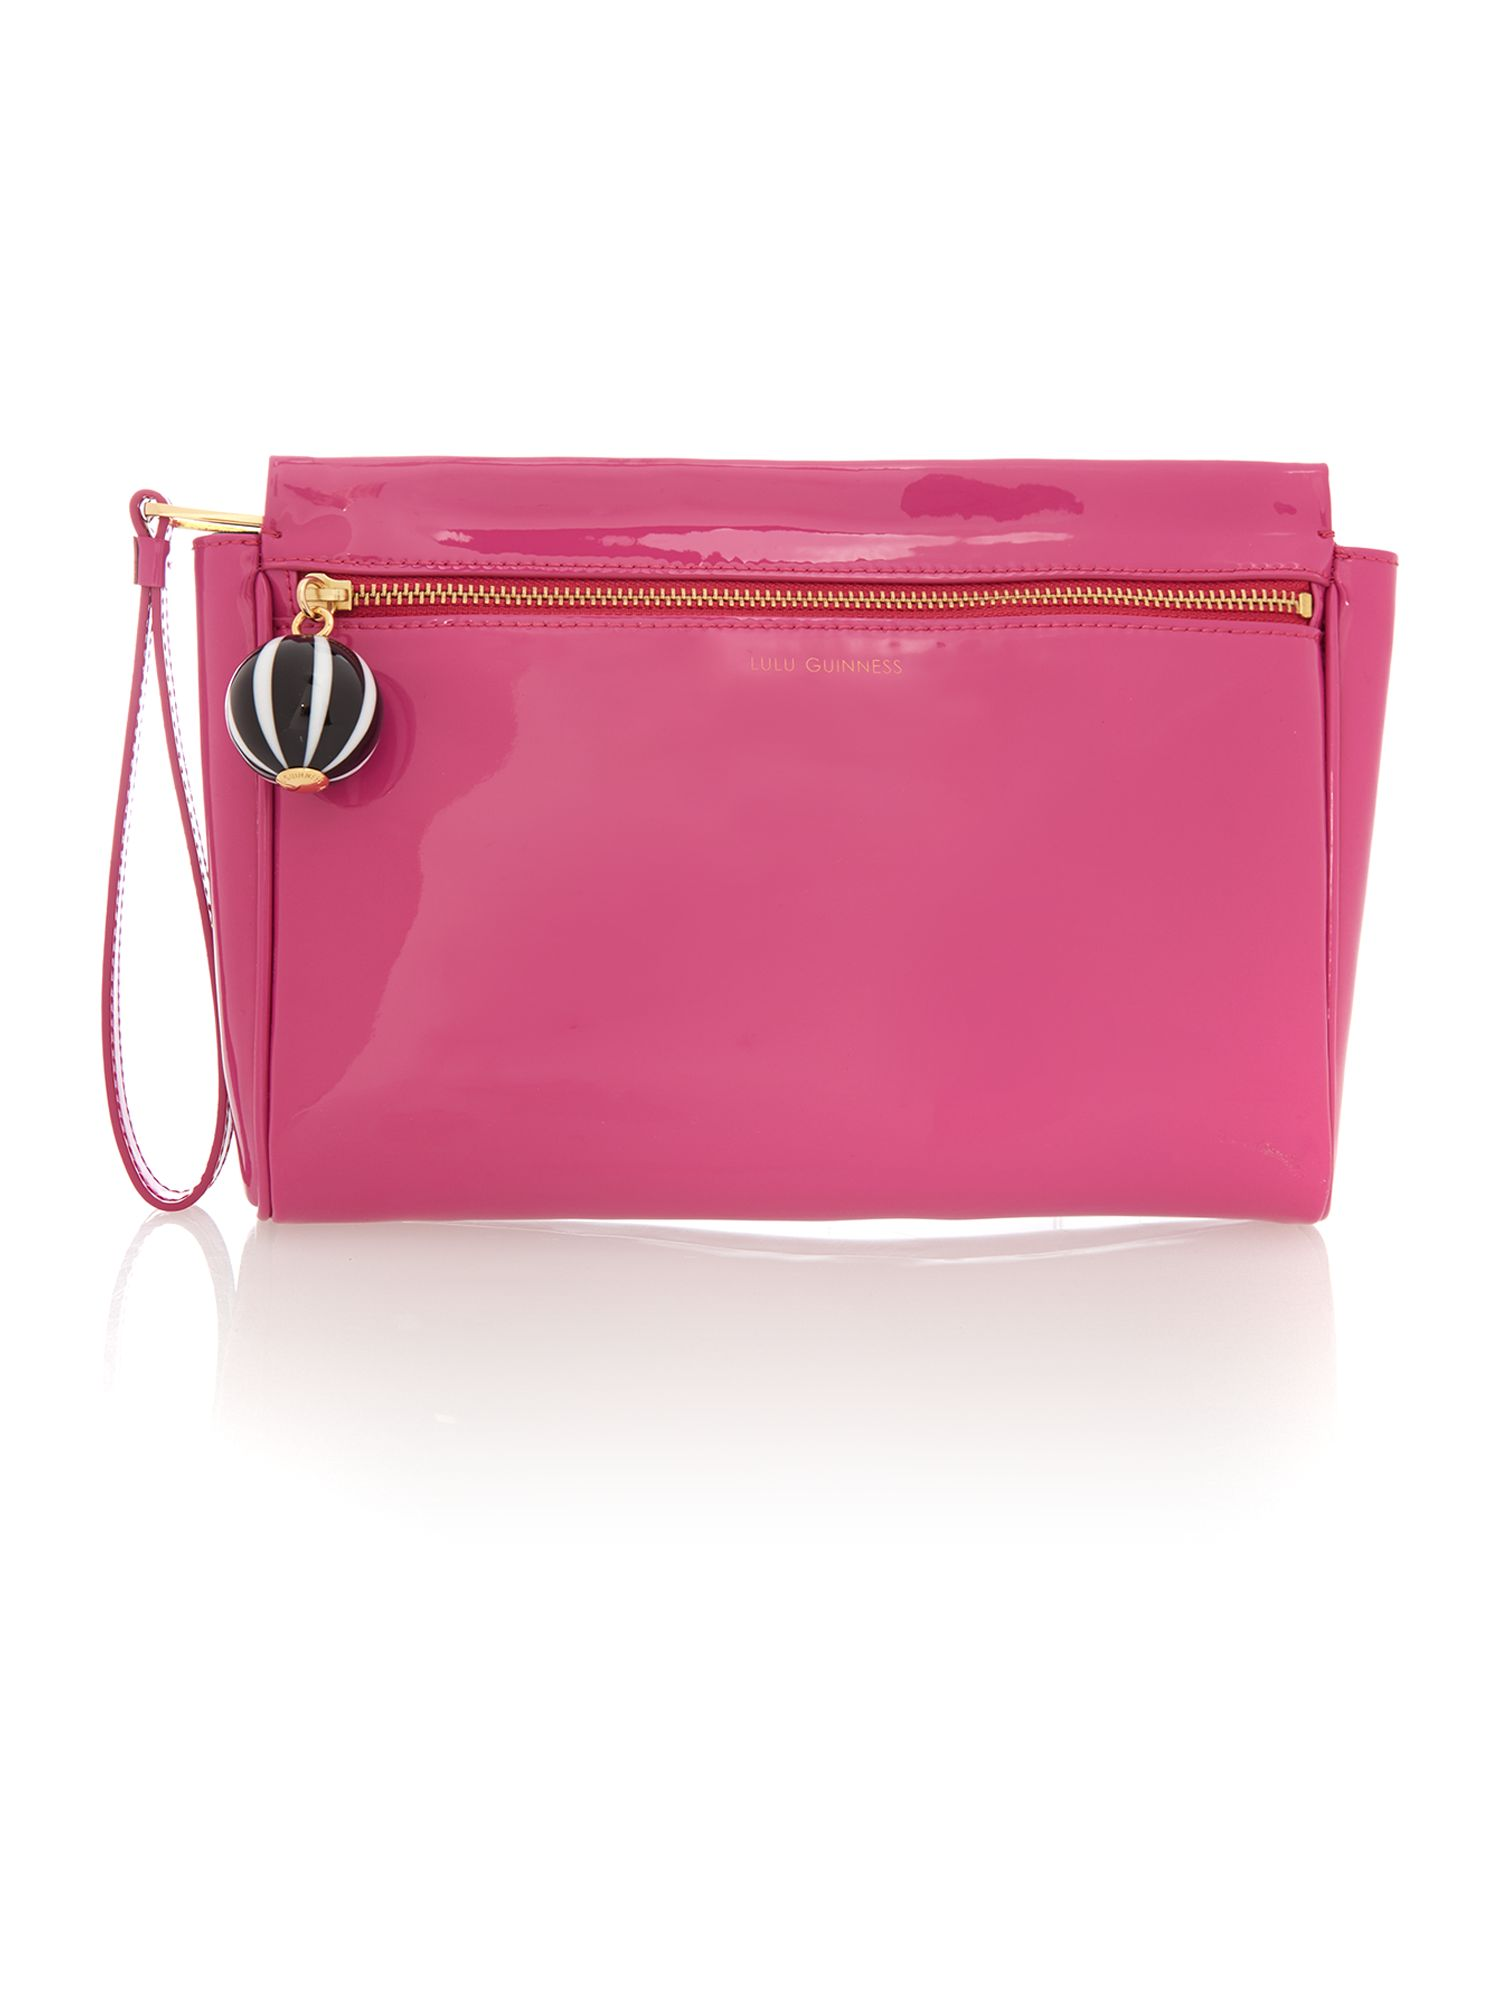 Katie patent pink clutch bag